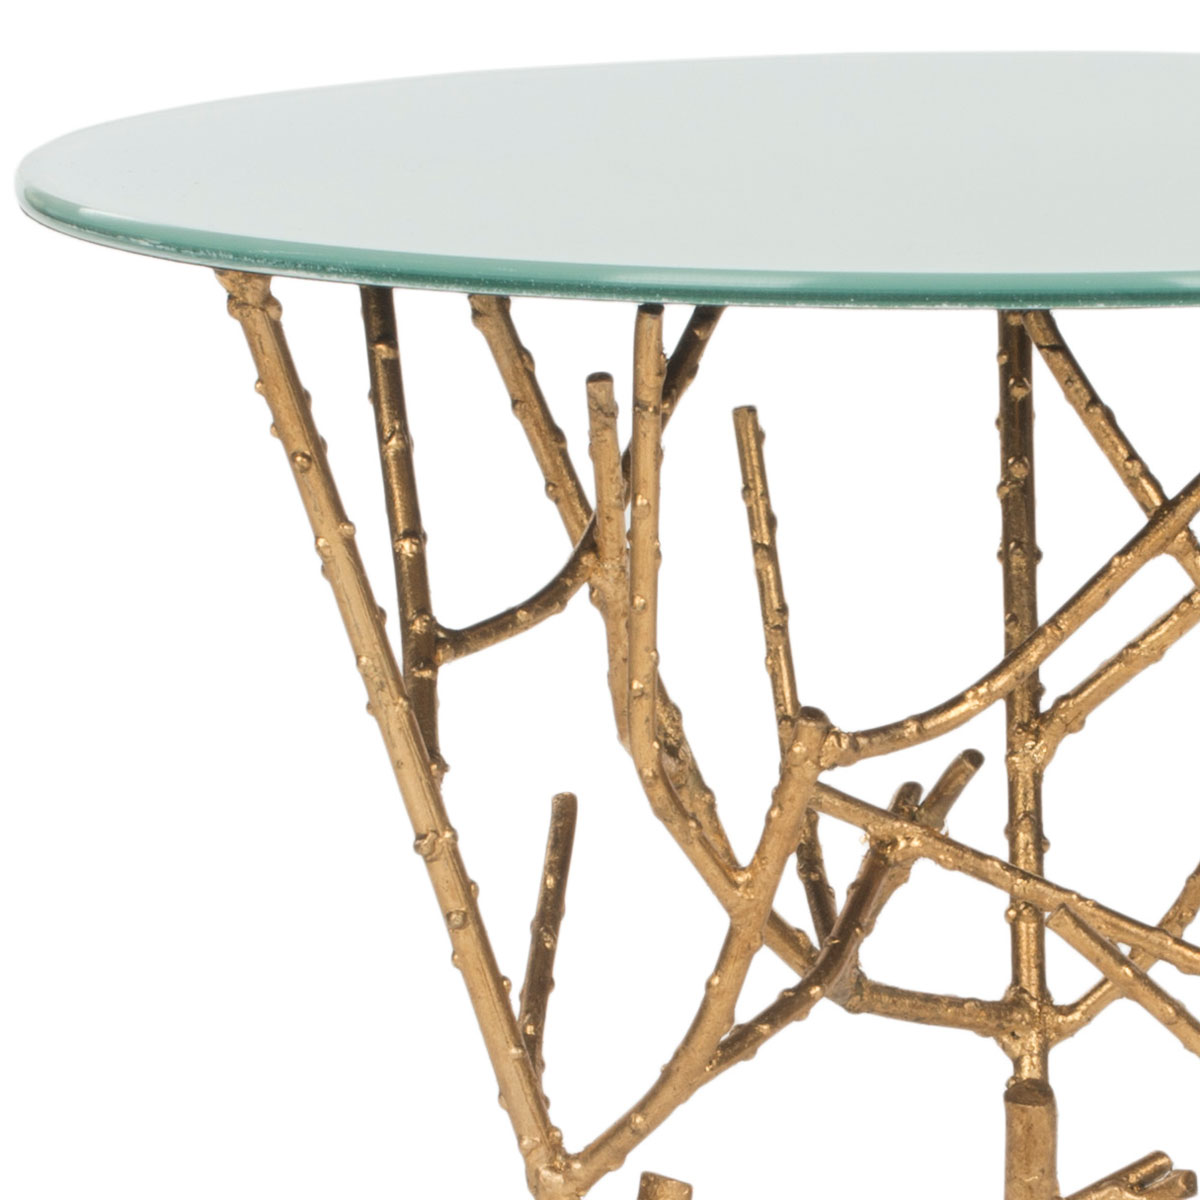 accent tables furniture safavieh detail white gold table tara branched glass top design modern lounge imitation wood and side inch round cloth tablecloths dinner centerpiece